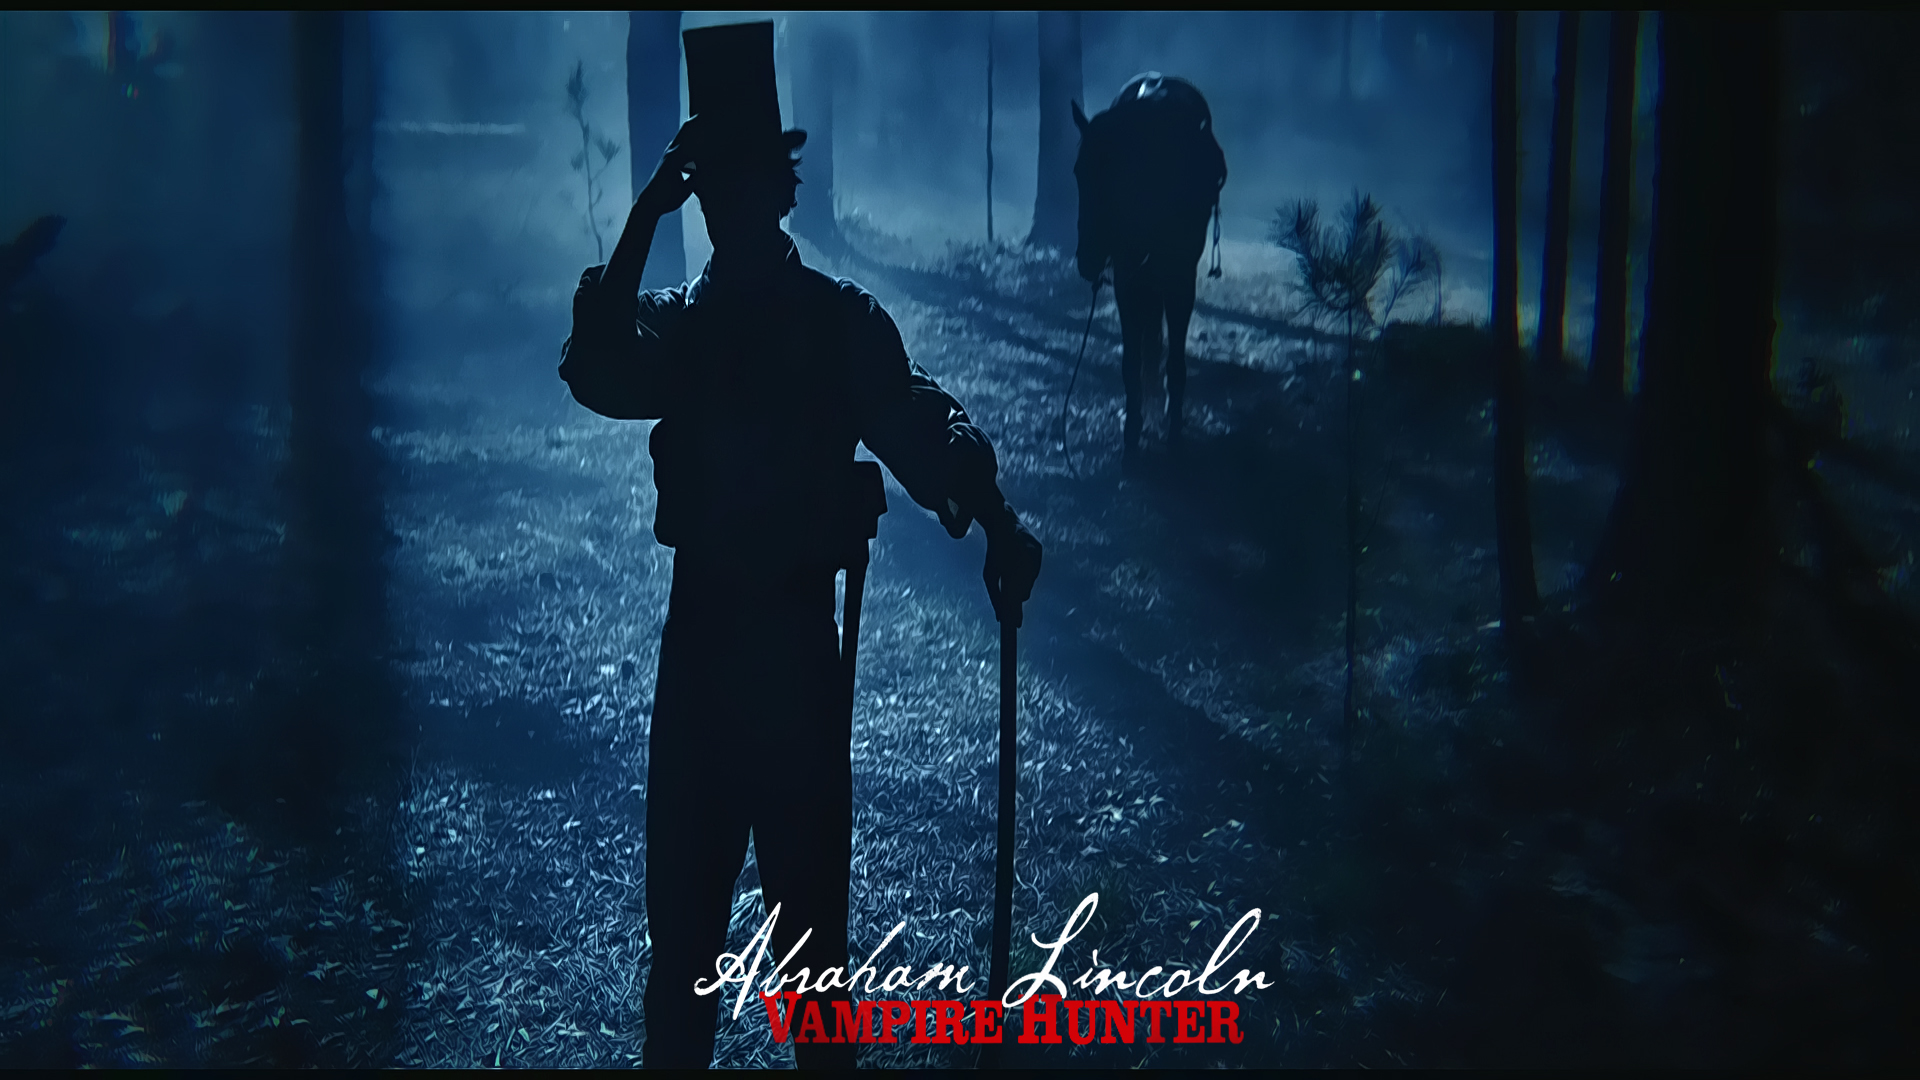 Abraham Lincoln Vampire Hunter wallpapersstills   Movie Wallpapers 1920x1080